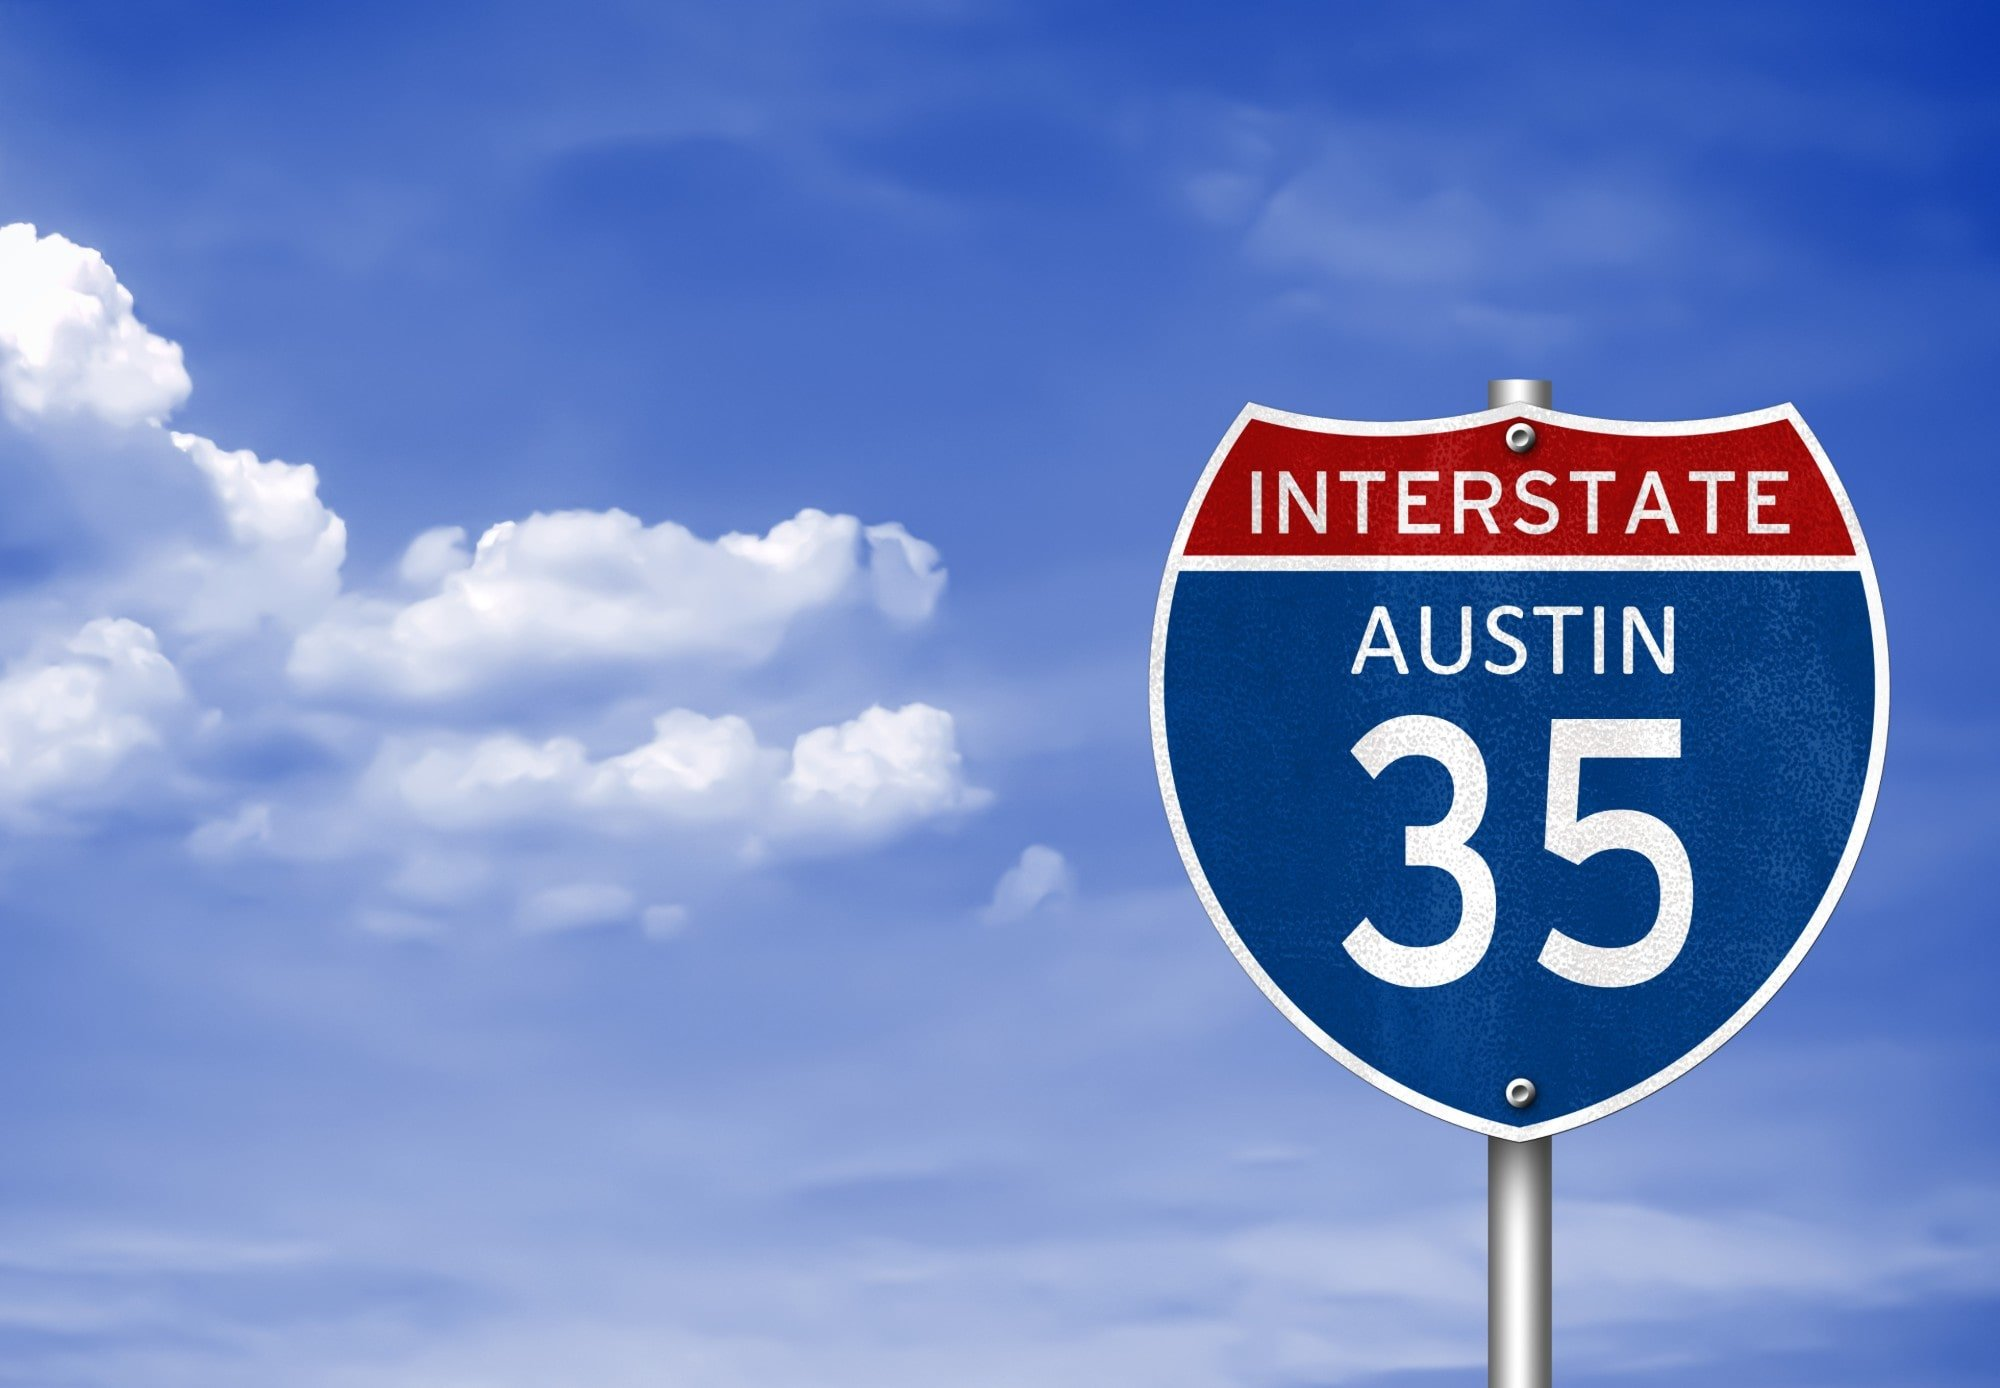 Austin real estate market update, July 2019